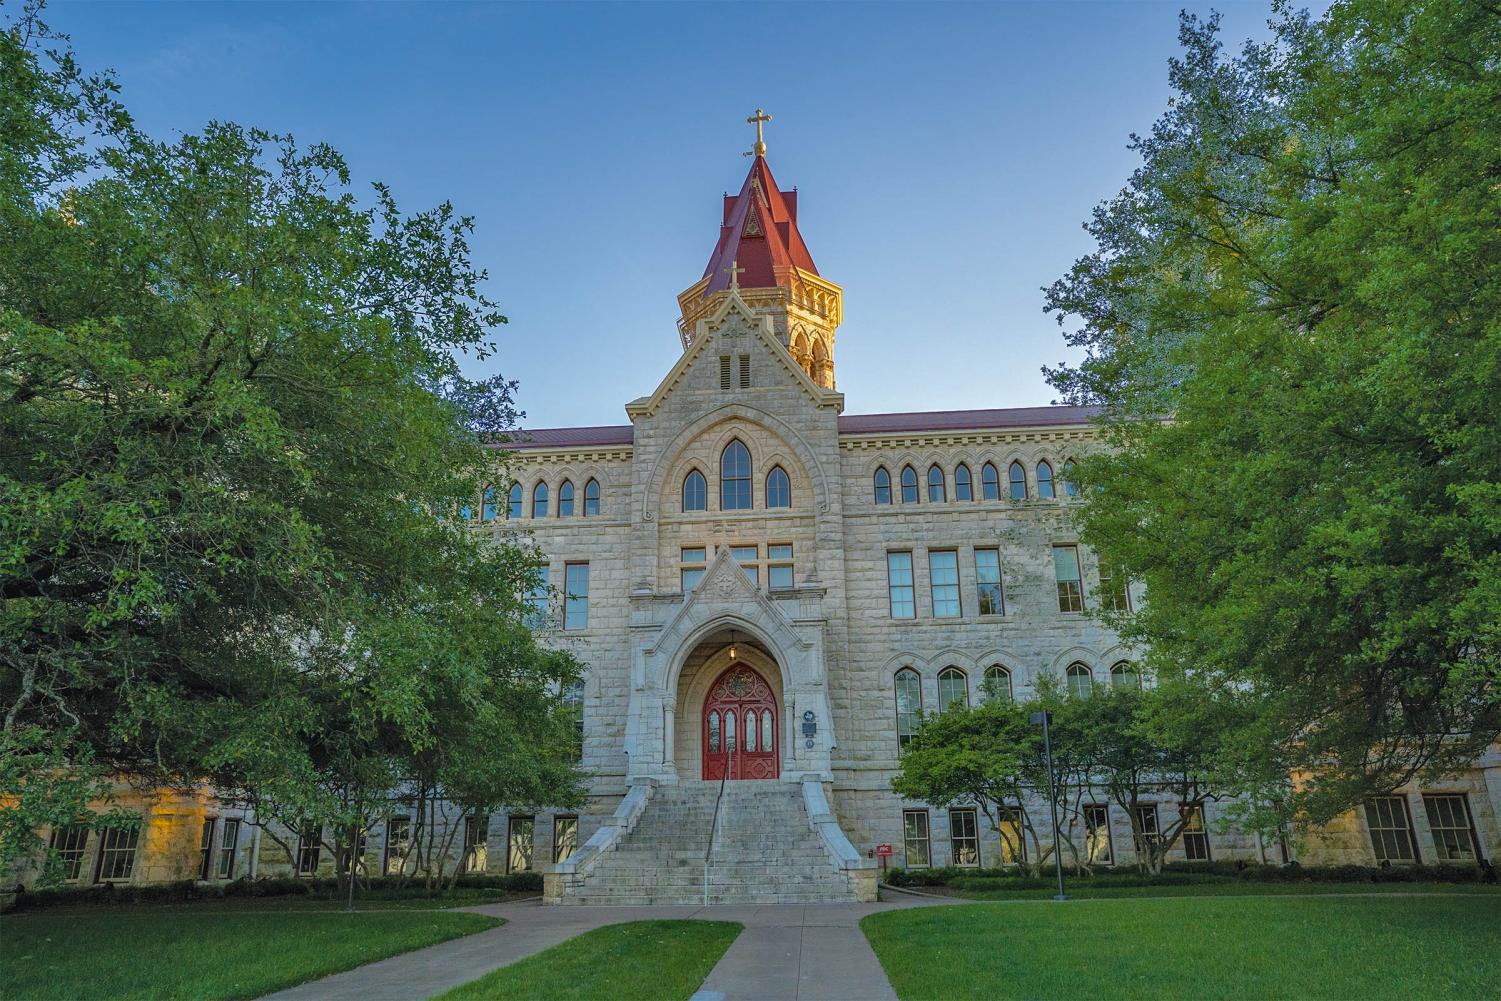 St. Edward's was featured in a thorough report conducted by the AAUP in October 2018.